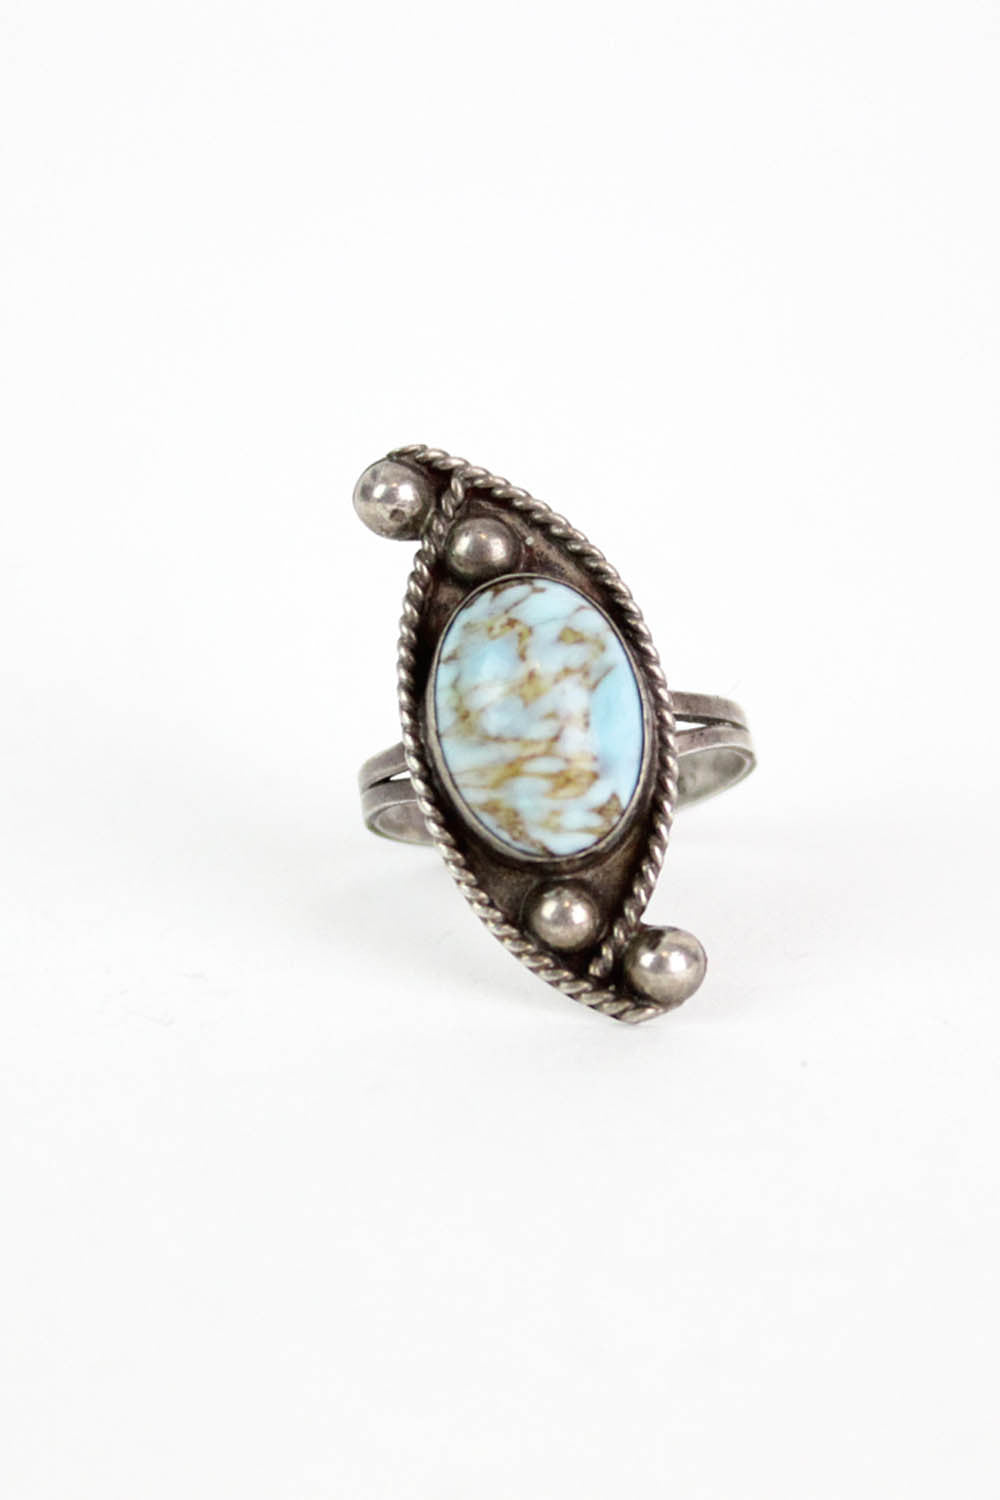 Wavy Sterling Turquoise Ring